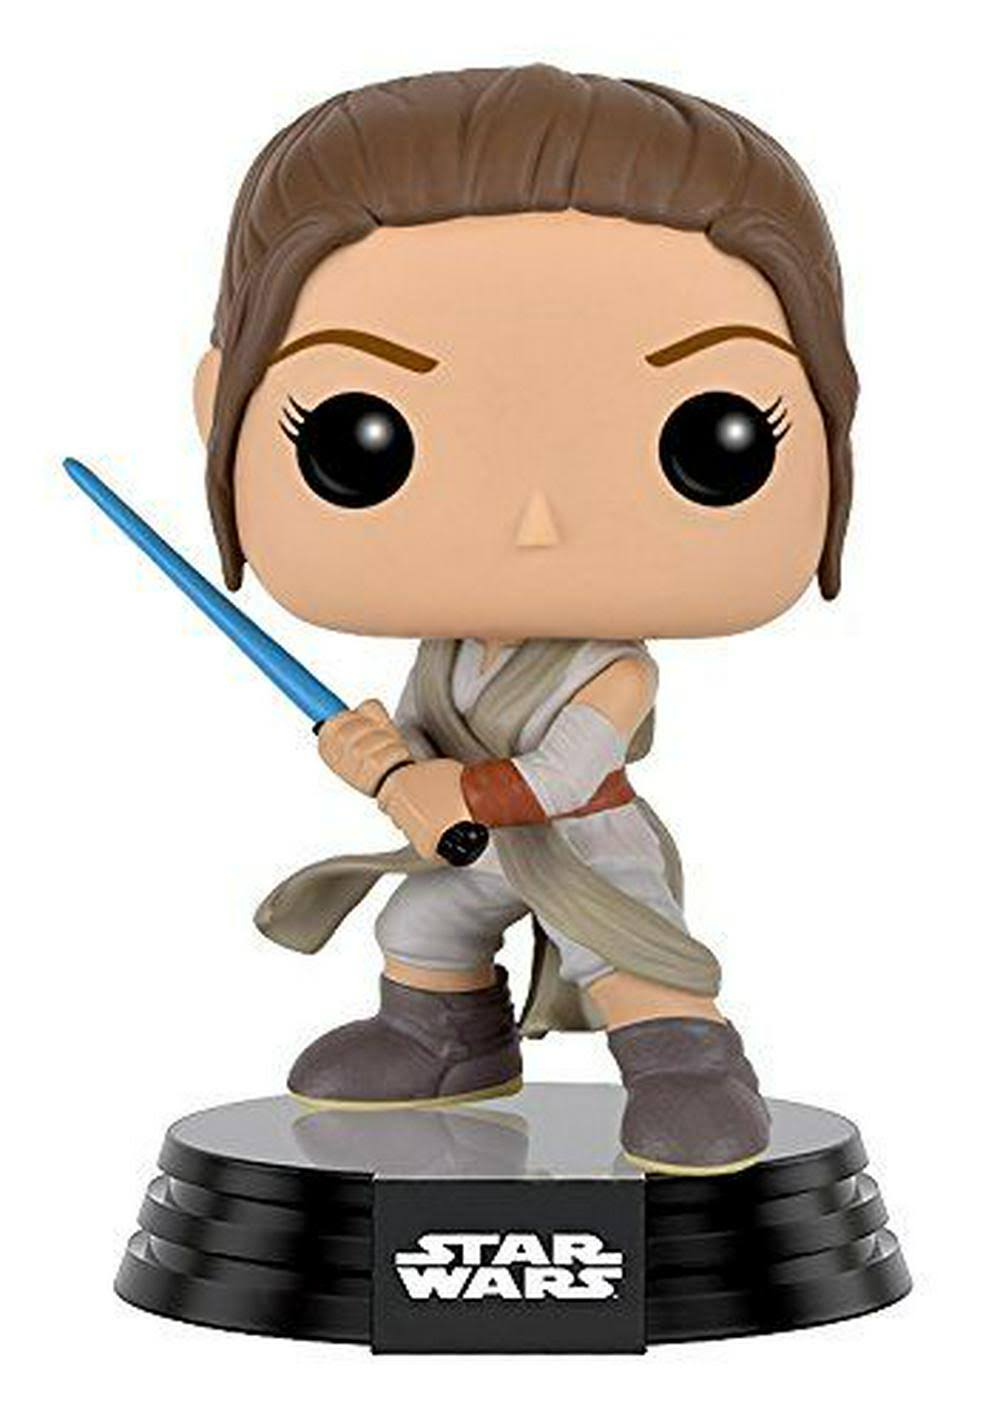 Funko POP! Star Wars: Episode VII: The Force Awakens Vinyl Bobble-Head Figure - Rey with Lightsaber